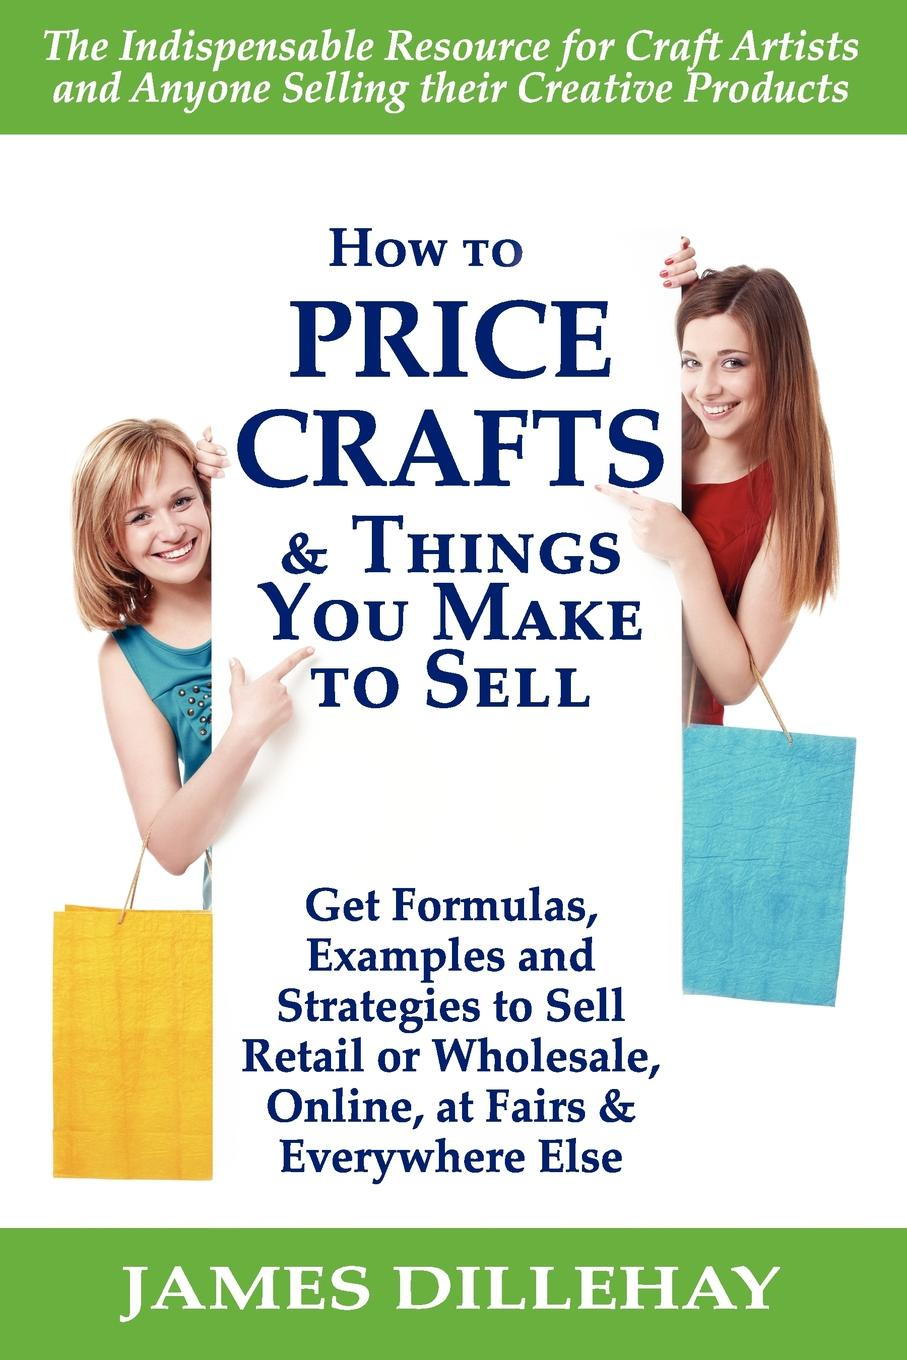 James Dillehay. How to Price Crafts and Things You Make to Sell